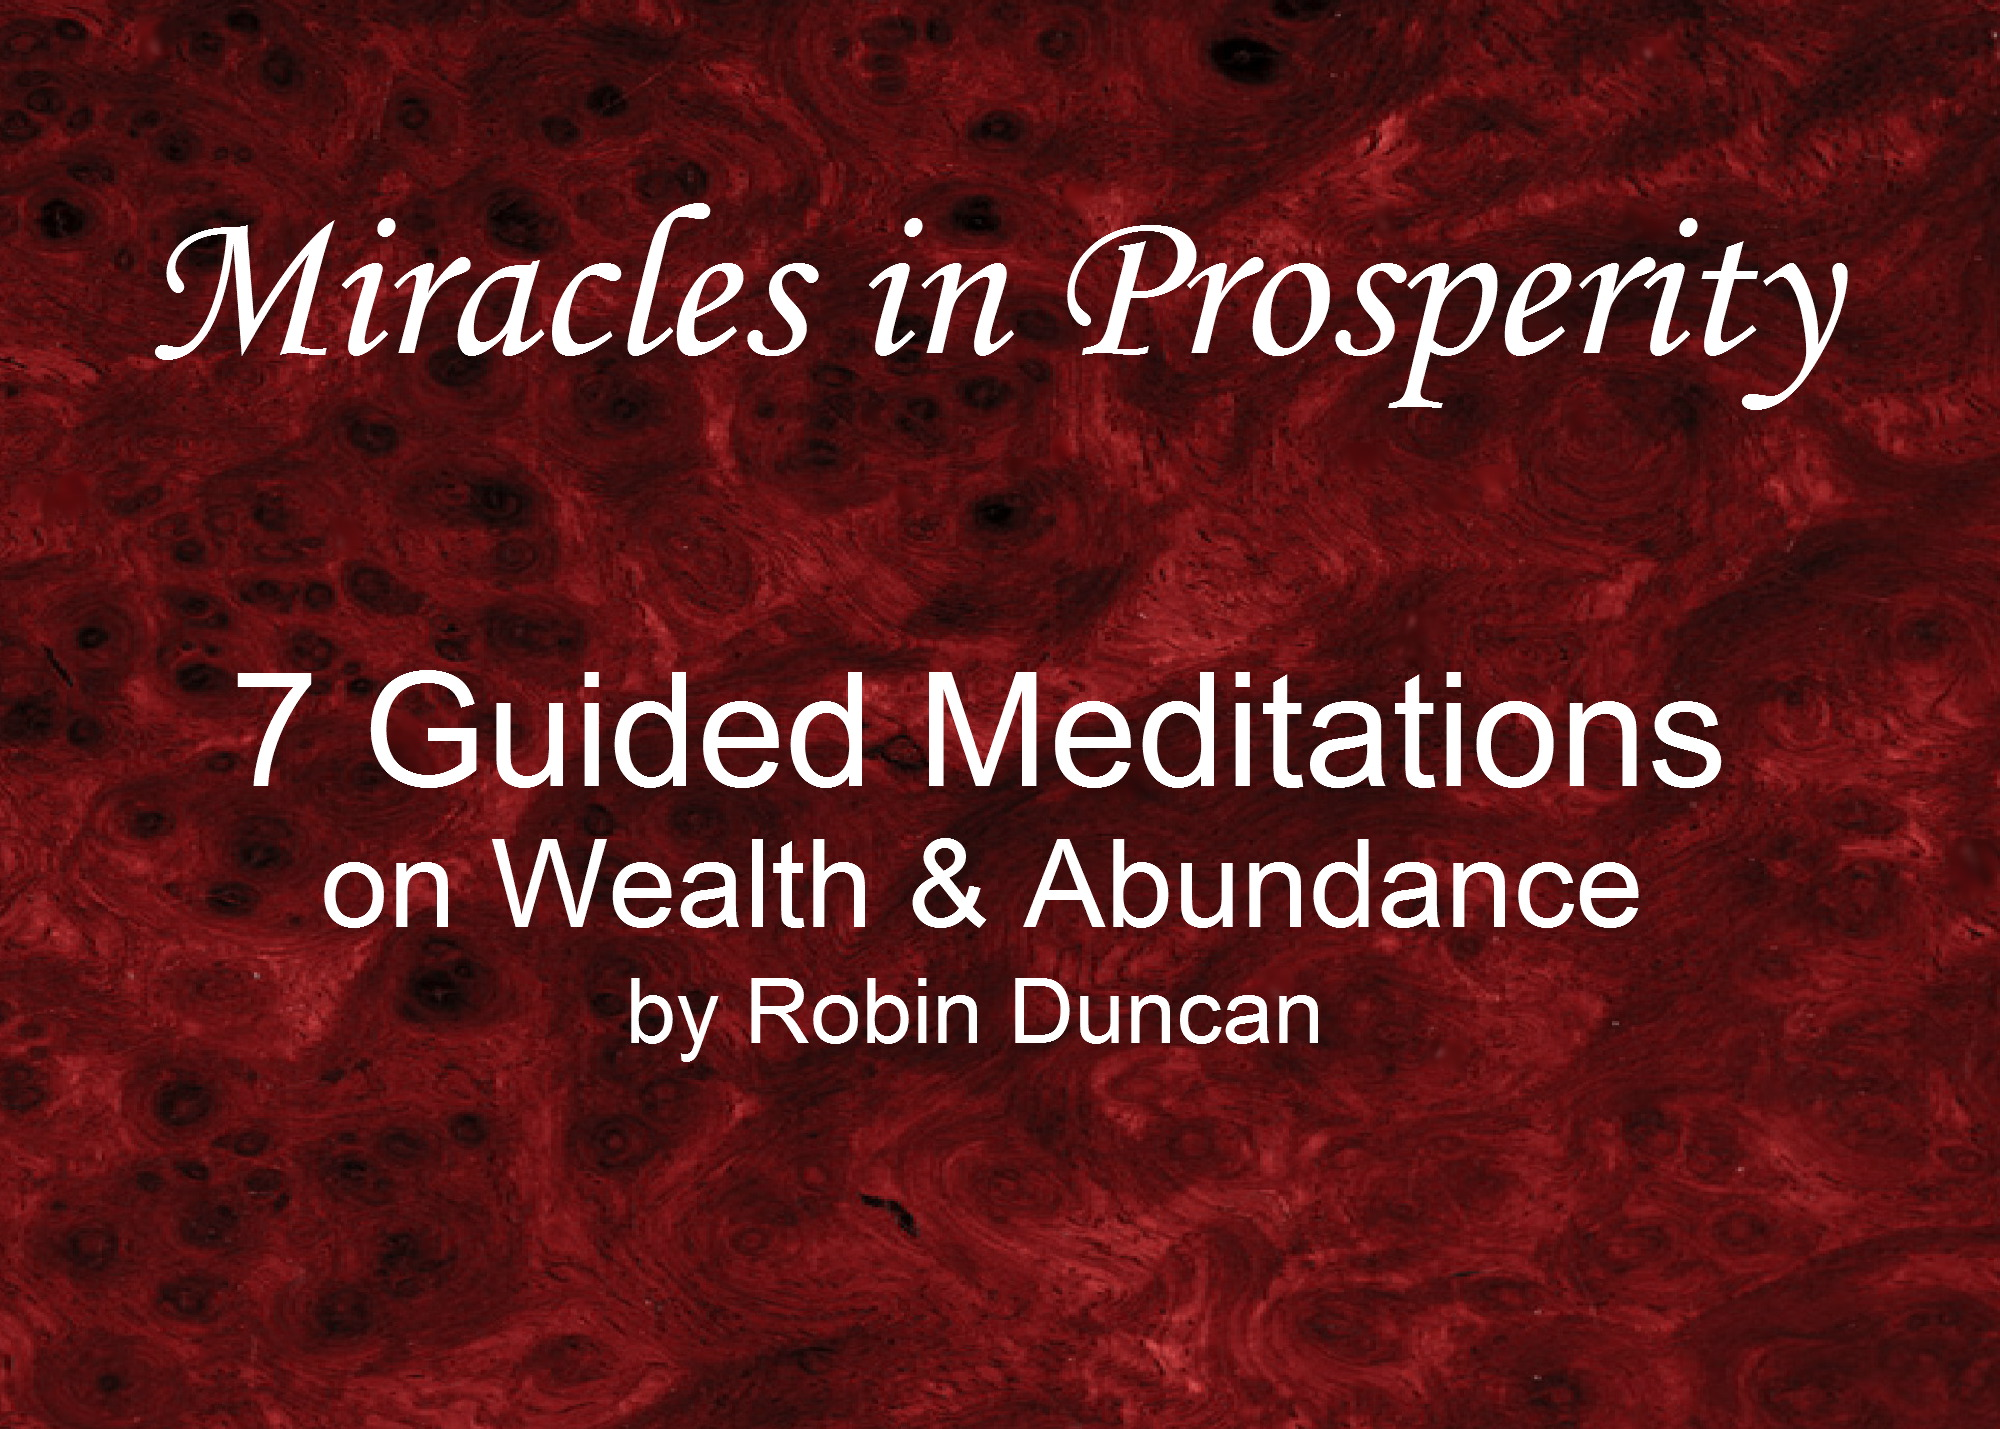 Miracles in Prosperity - 7 Guided Meditations